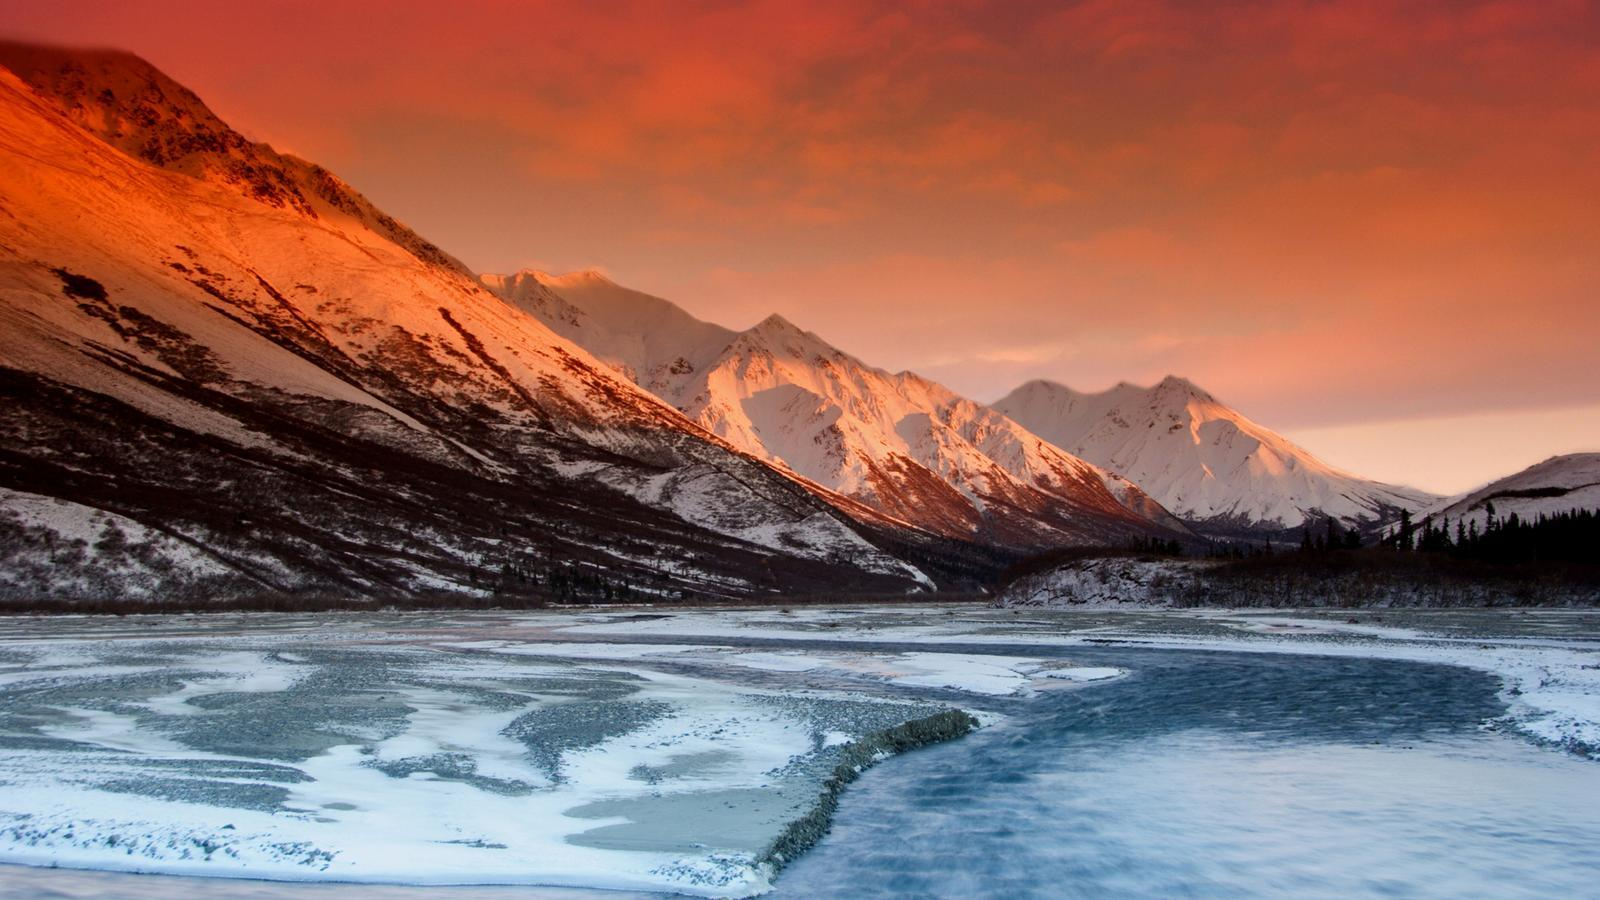 One World Trips - Alaska Kenai & Denali Adventure